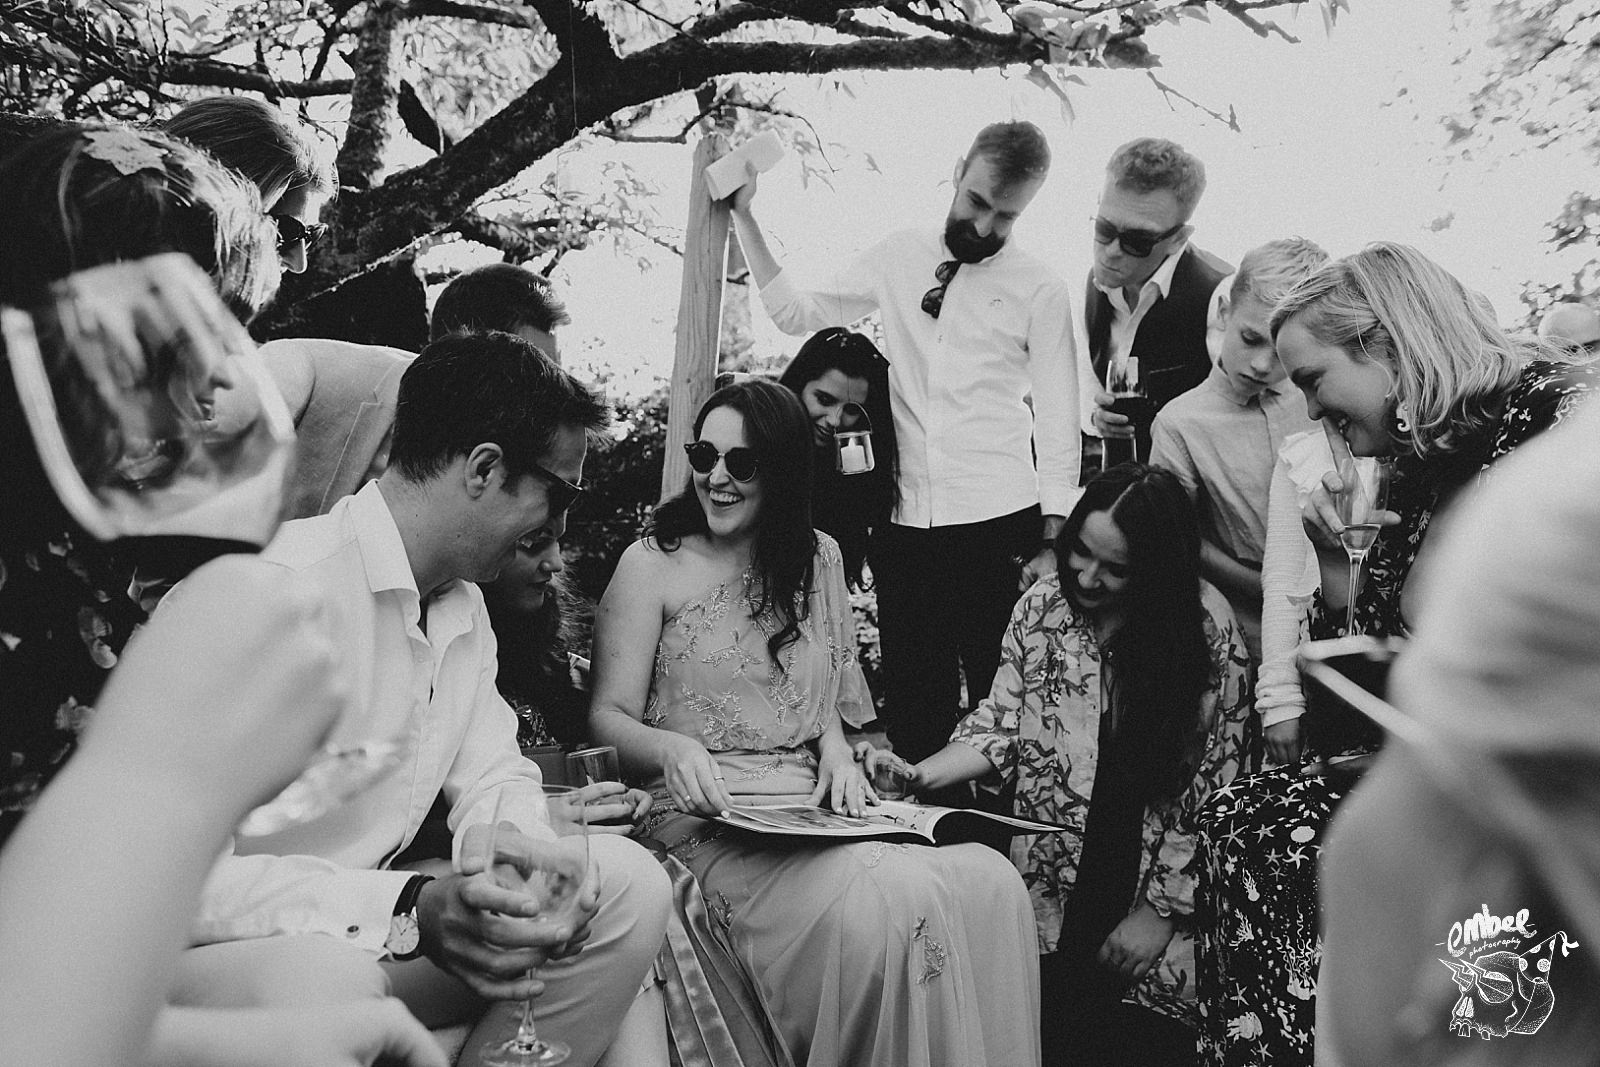 everyone gathered around the bride looking at groom baby pictures